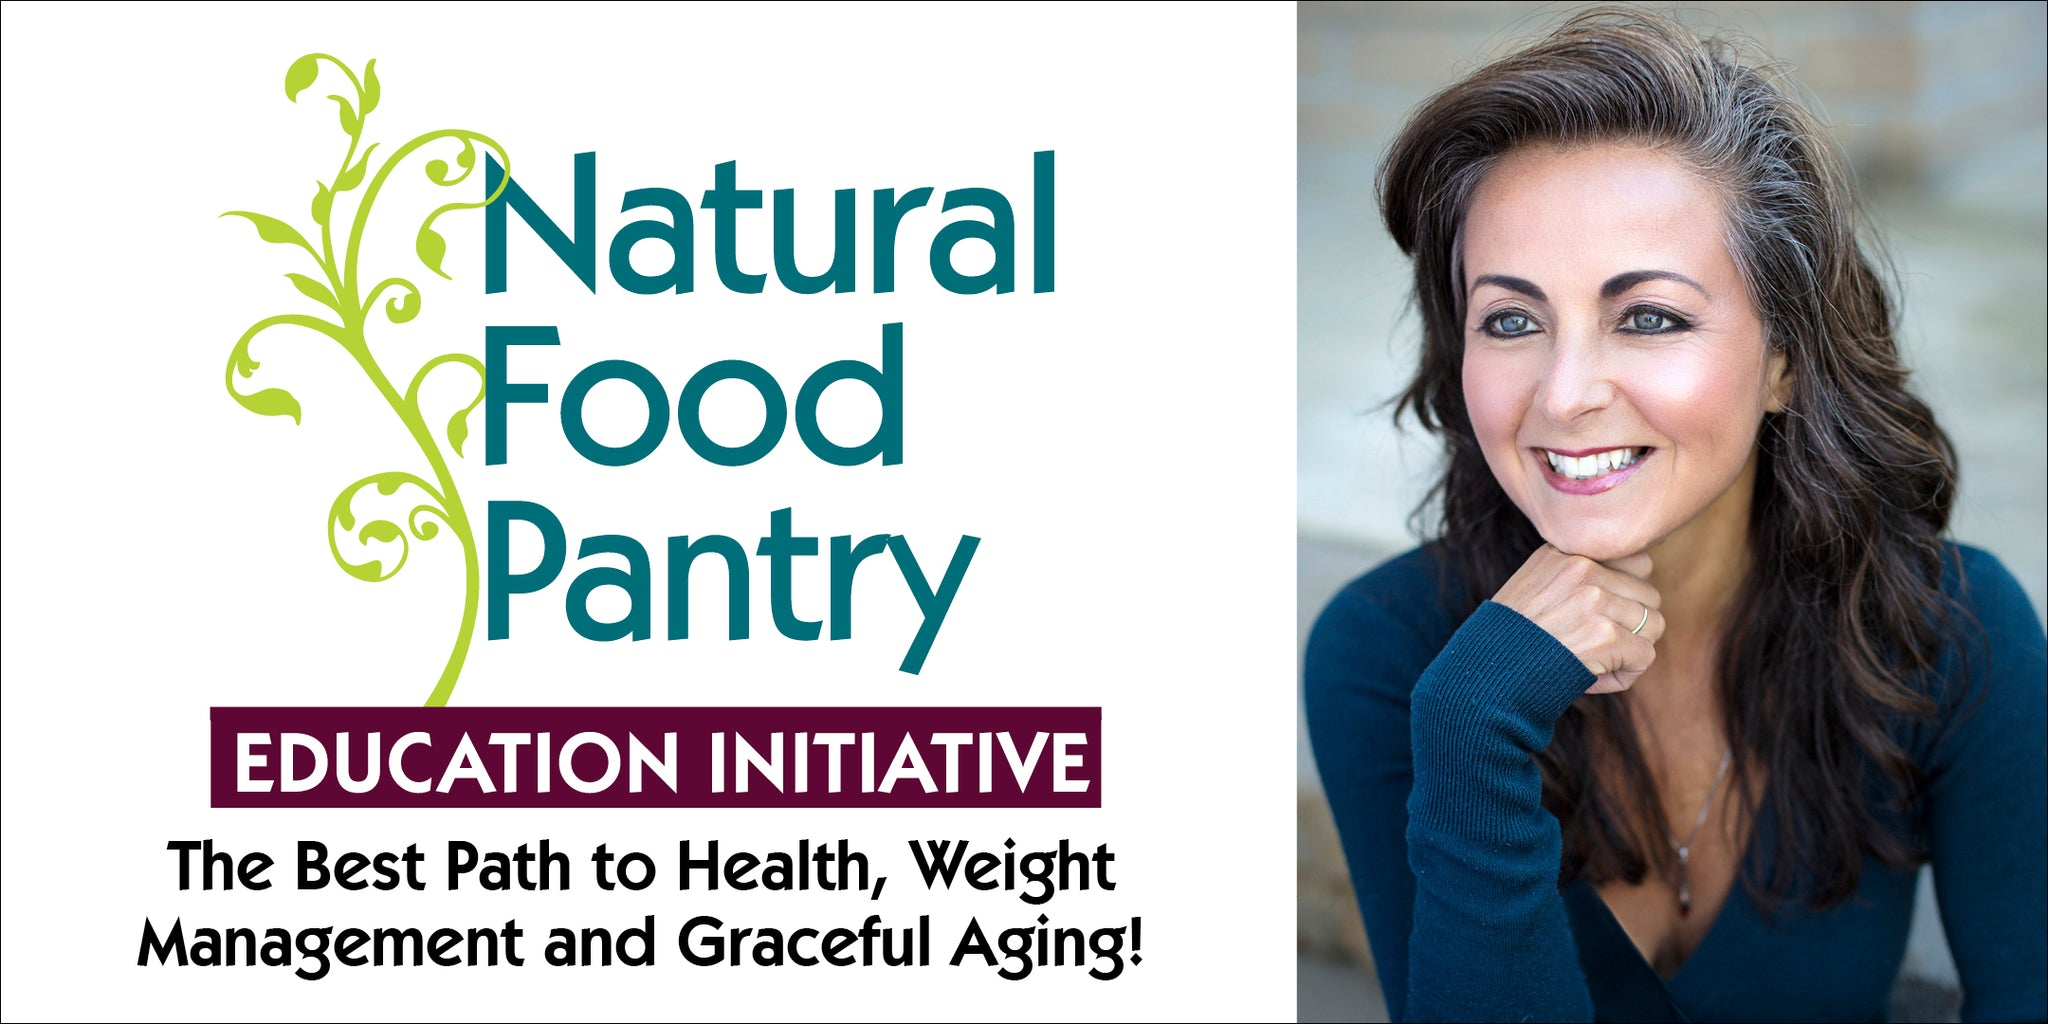 Jan 9: The Best Path to Health, Weight Management and Graceful Aging!